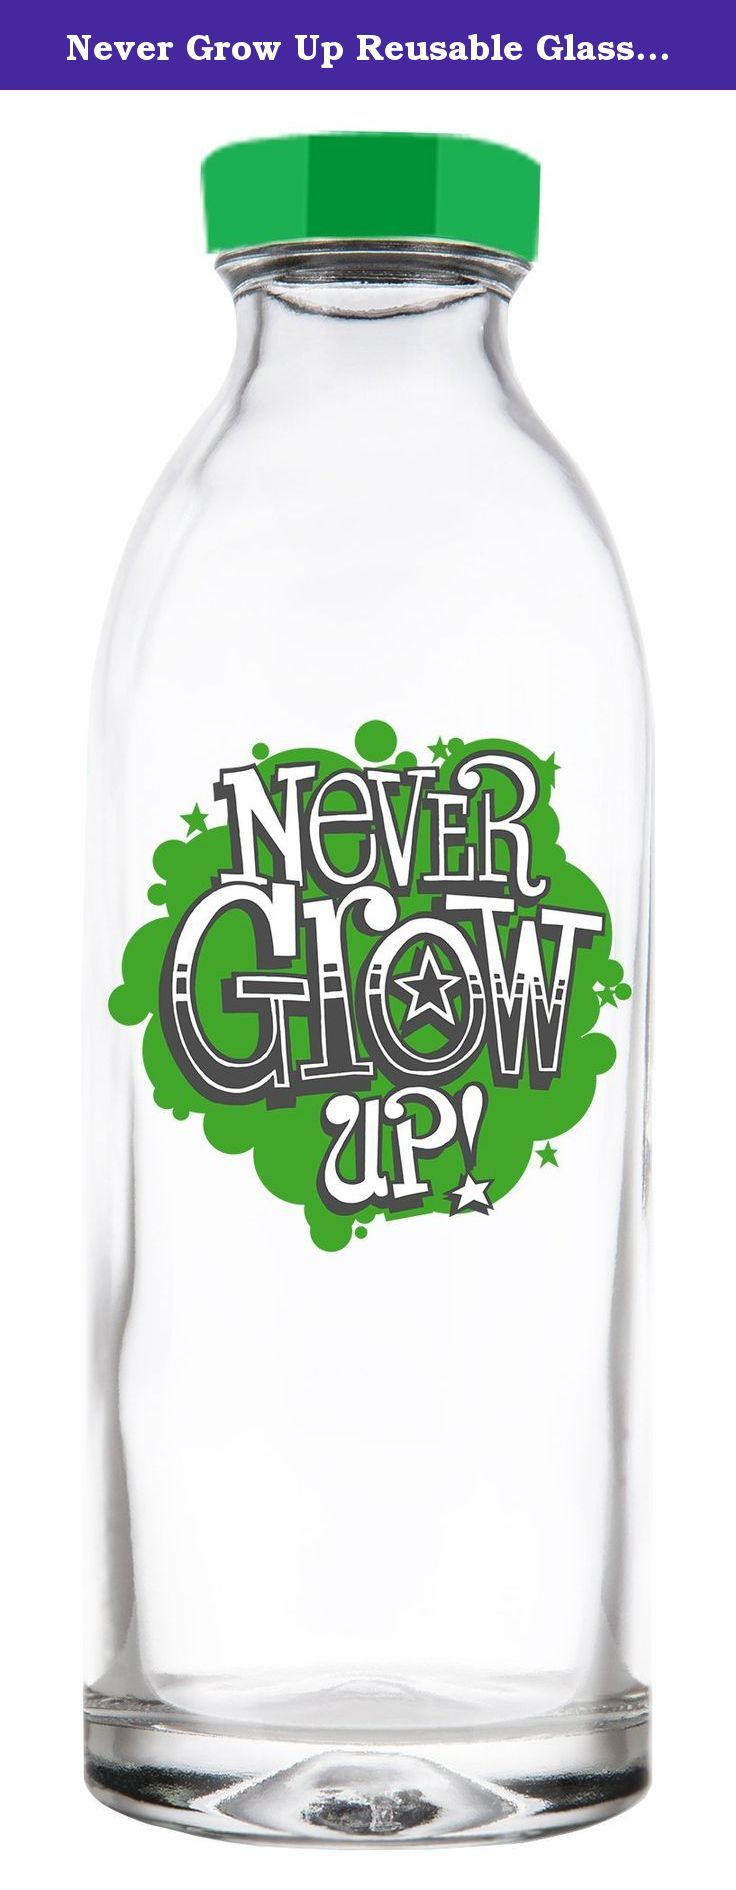 Never Grow Up Reusable Glass Water Bottle By Faucet Face, 14.4 Oz. Get Faucet Face Glass Water Bottles and keep your water tasting fresh! If you aren't familiar with Faucet Face, we sell reusable, ecofriendly glass water bottles. Our bottles save money, won't leach chemicals, offer superior taste, and best of all, are better for the environment. Faucet Face Classic Design bottles come in 3 styles, Tap is Terrific, Hose Water, and Hummingbird Feeder, while the Limited Edition series…